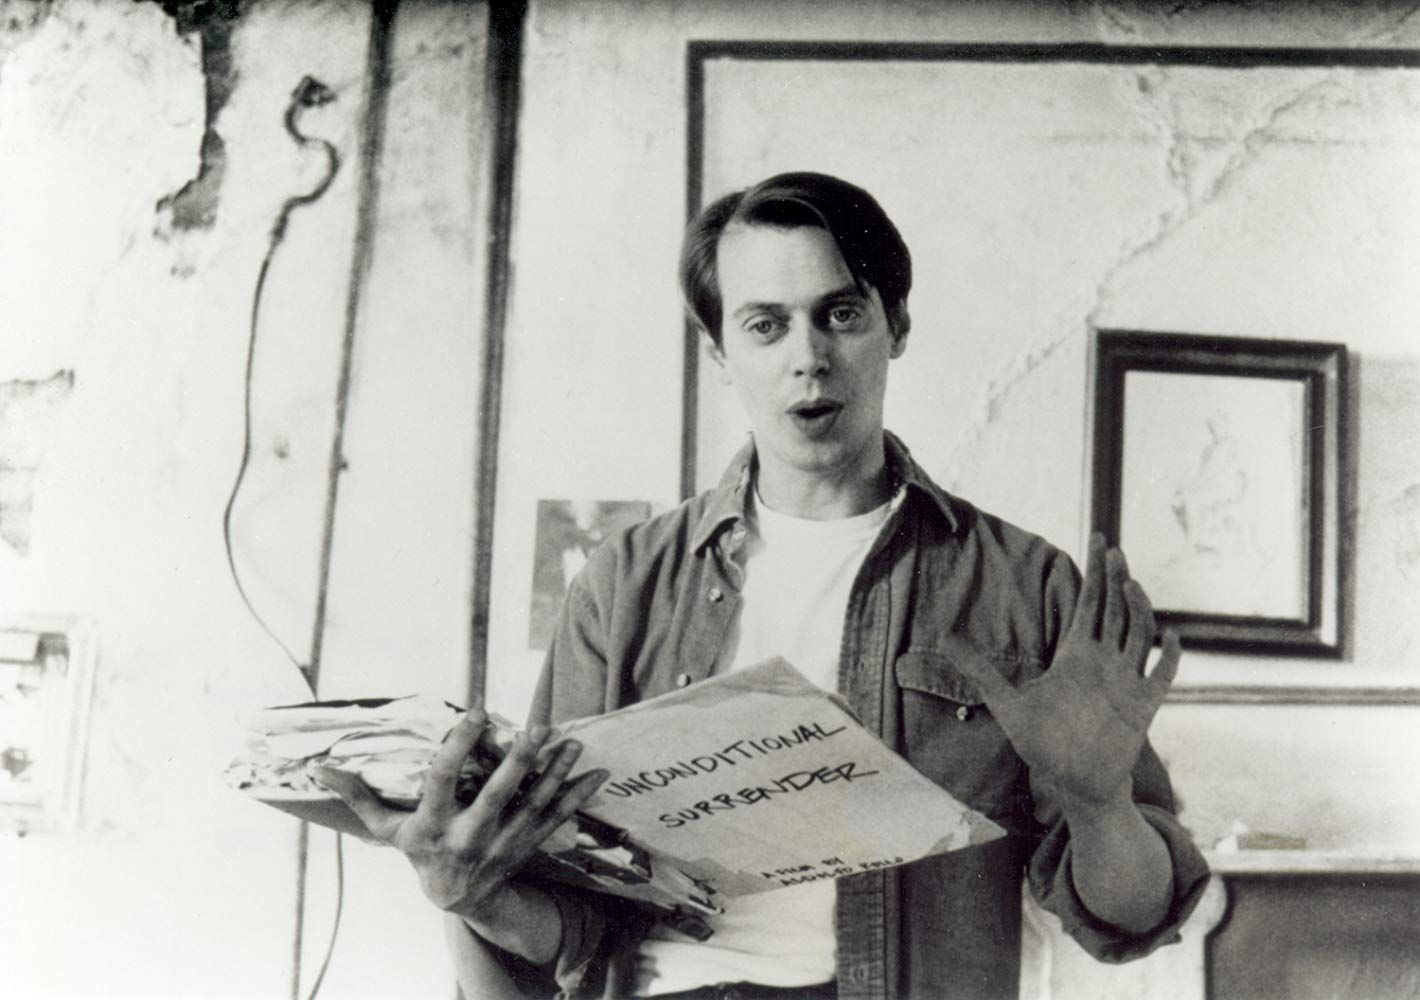 Young Buscemi at 'In the Soup'